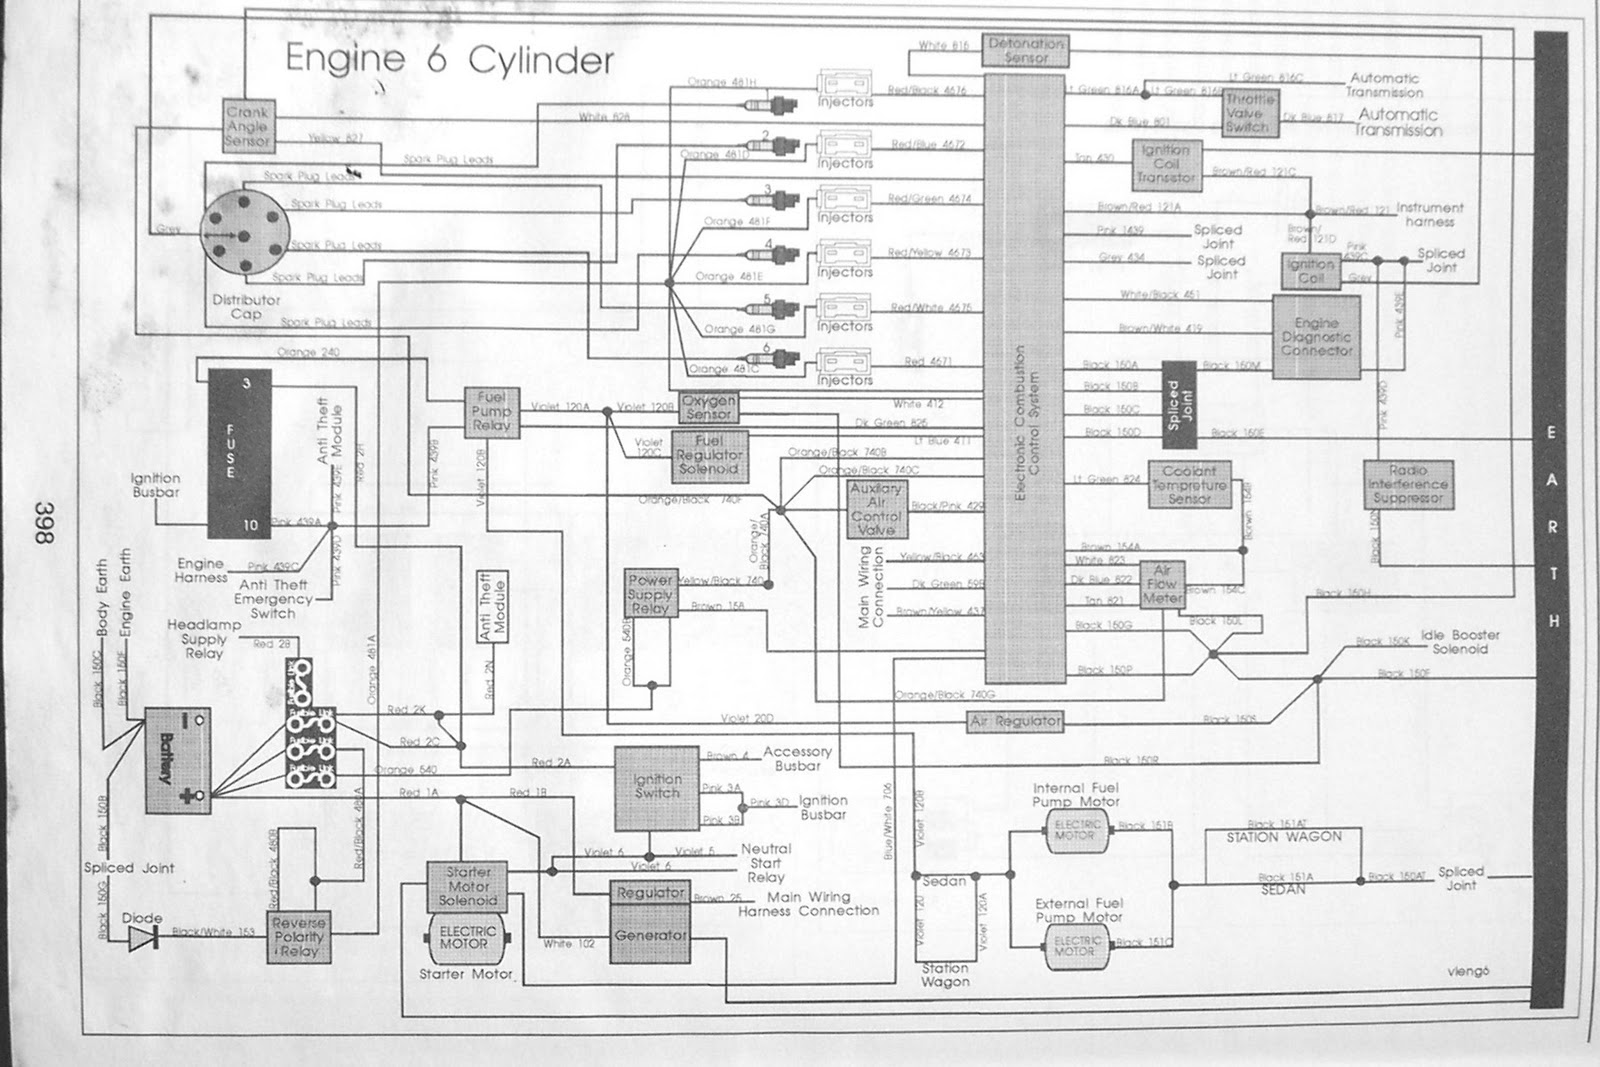 hight resolution of vl wiring diagram wiring diagram blogs toyota alternator diagram vl alternator wiring diagram